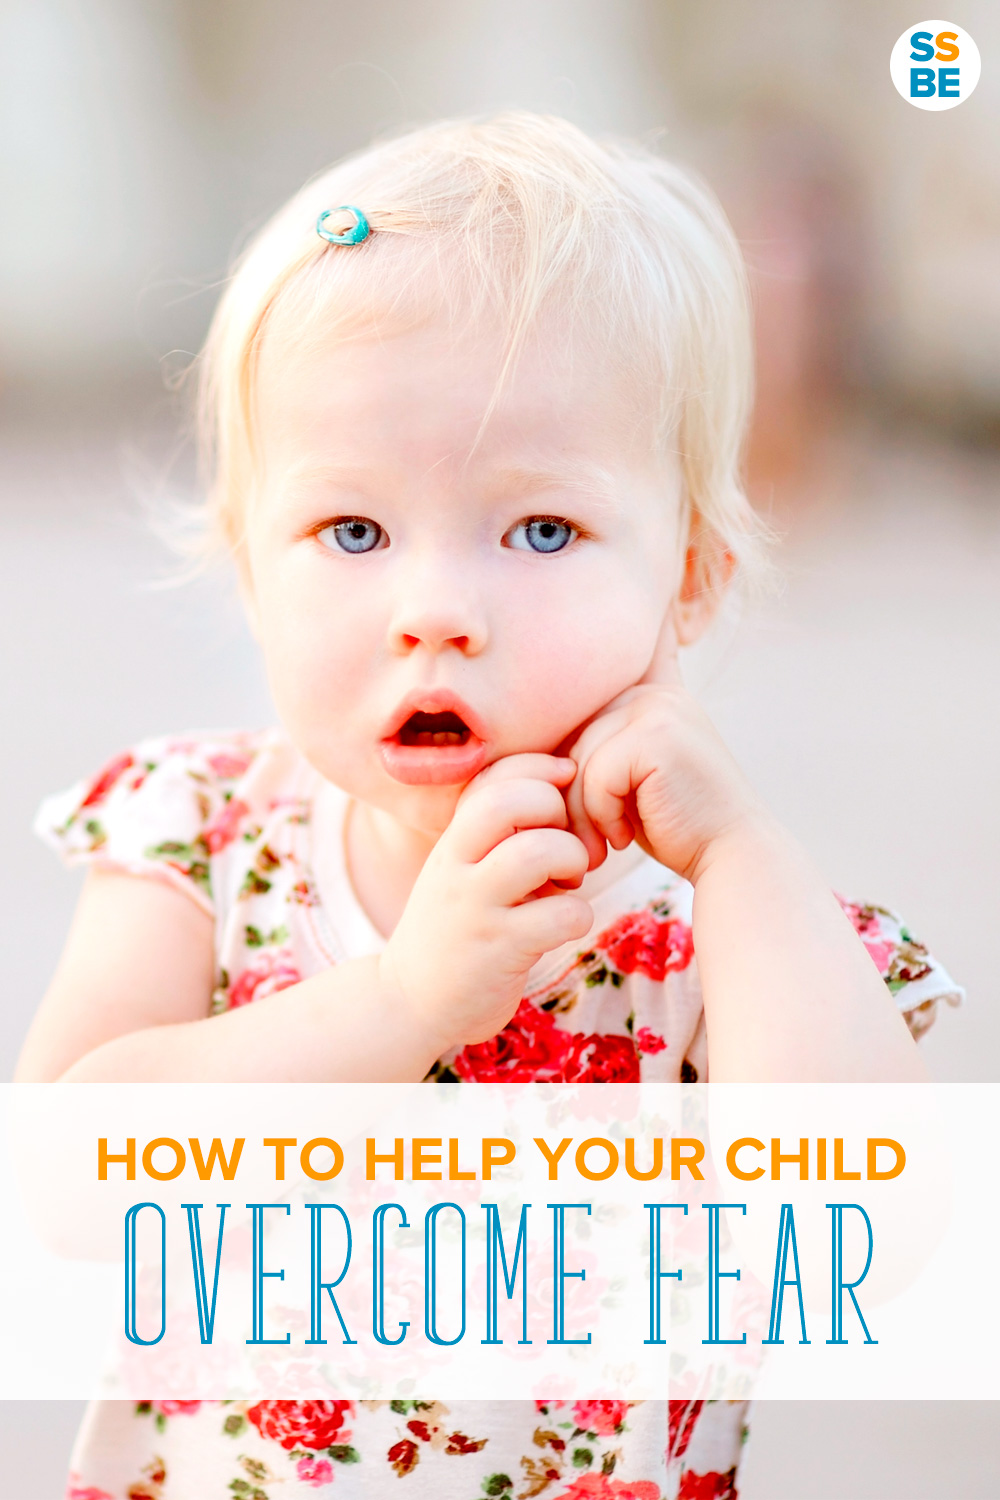 So I needed some tips on how to help your child overcome fear, and this is what I learned: